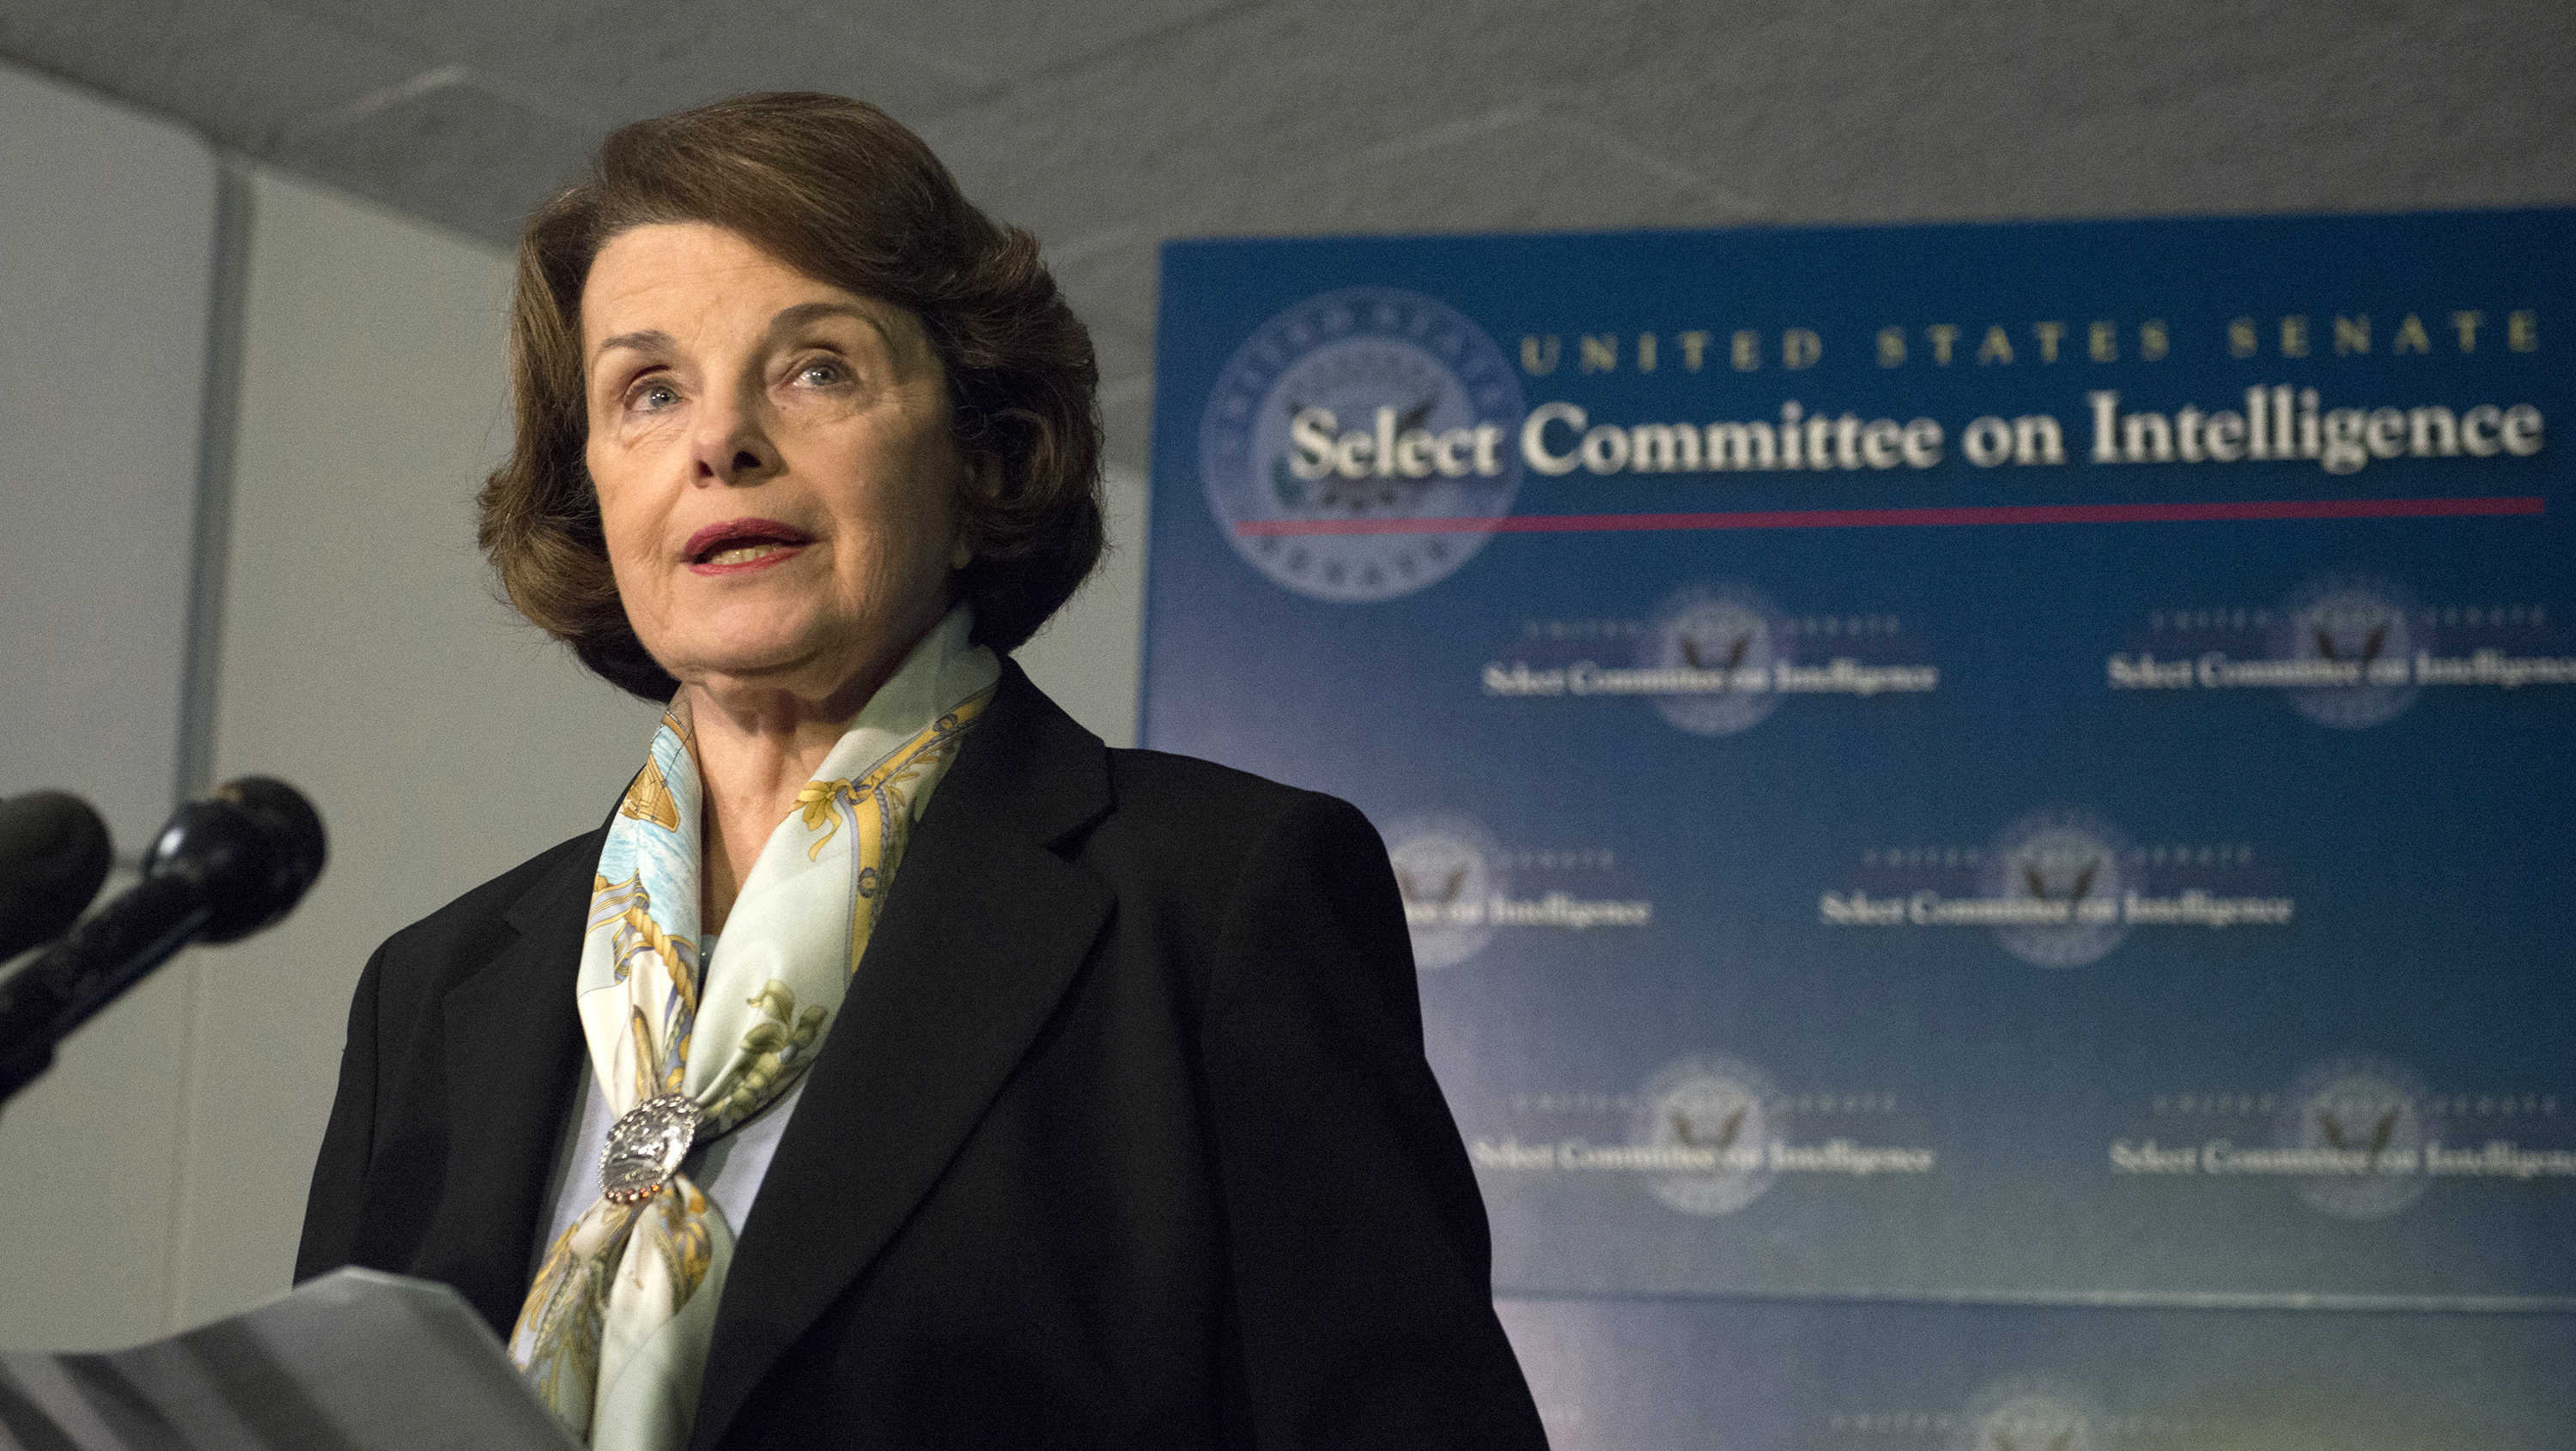 Senate Intelligence Committee Chairwoman Dianne Feinstein, D-Calif., speaks after a closed-door meeting Thursday on Capitol Hill. The panel voted to approve declassifying part of a report on Bush-era interrogations of terrorism suspects.